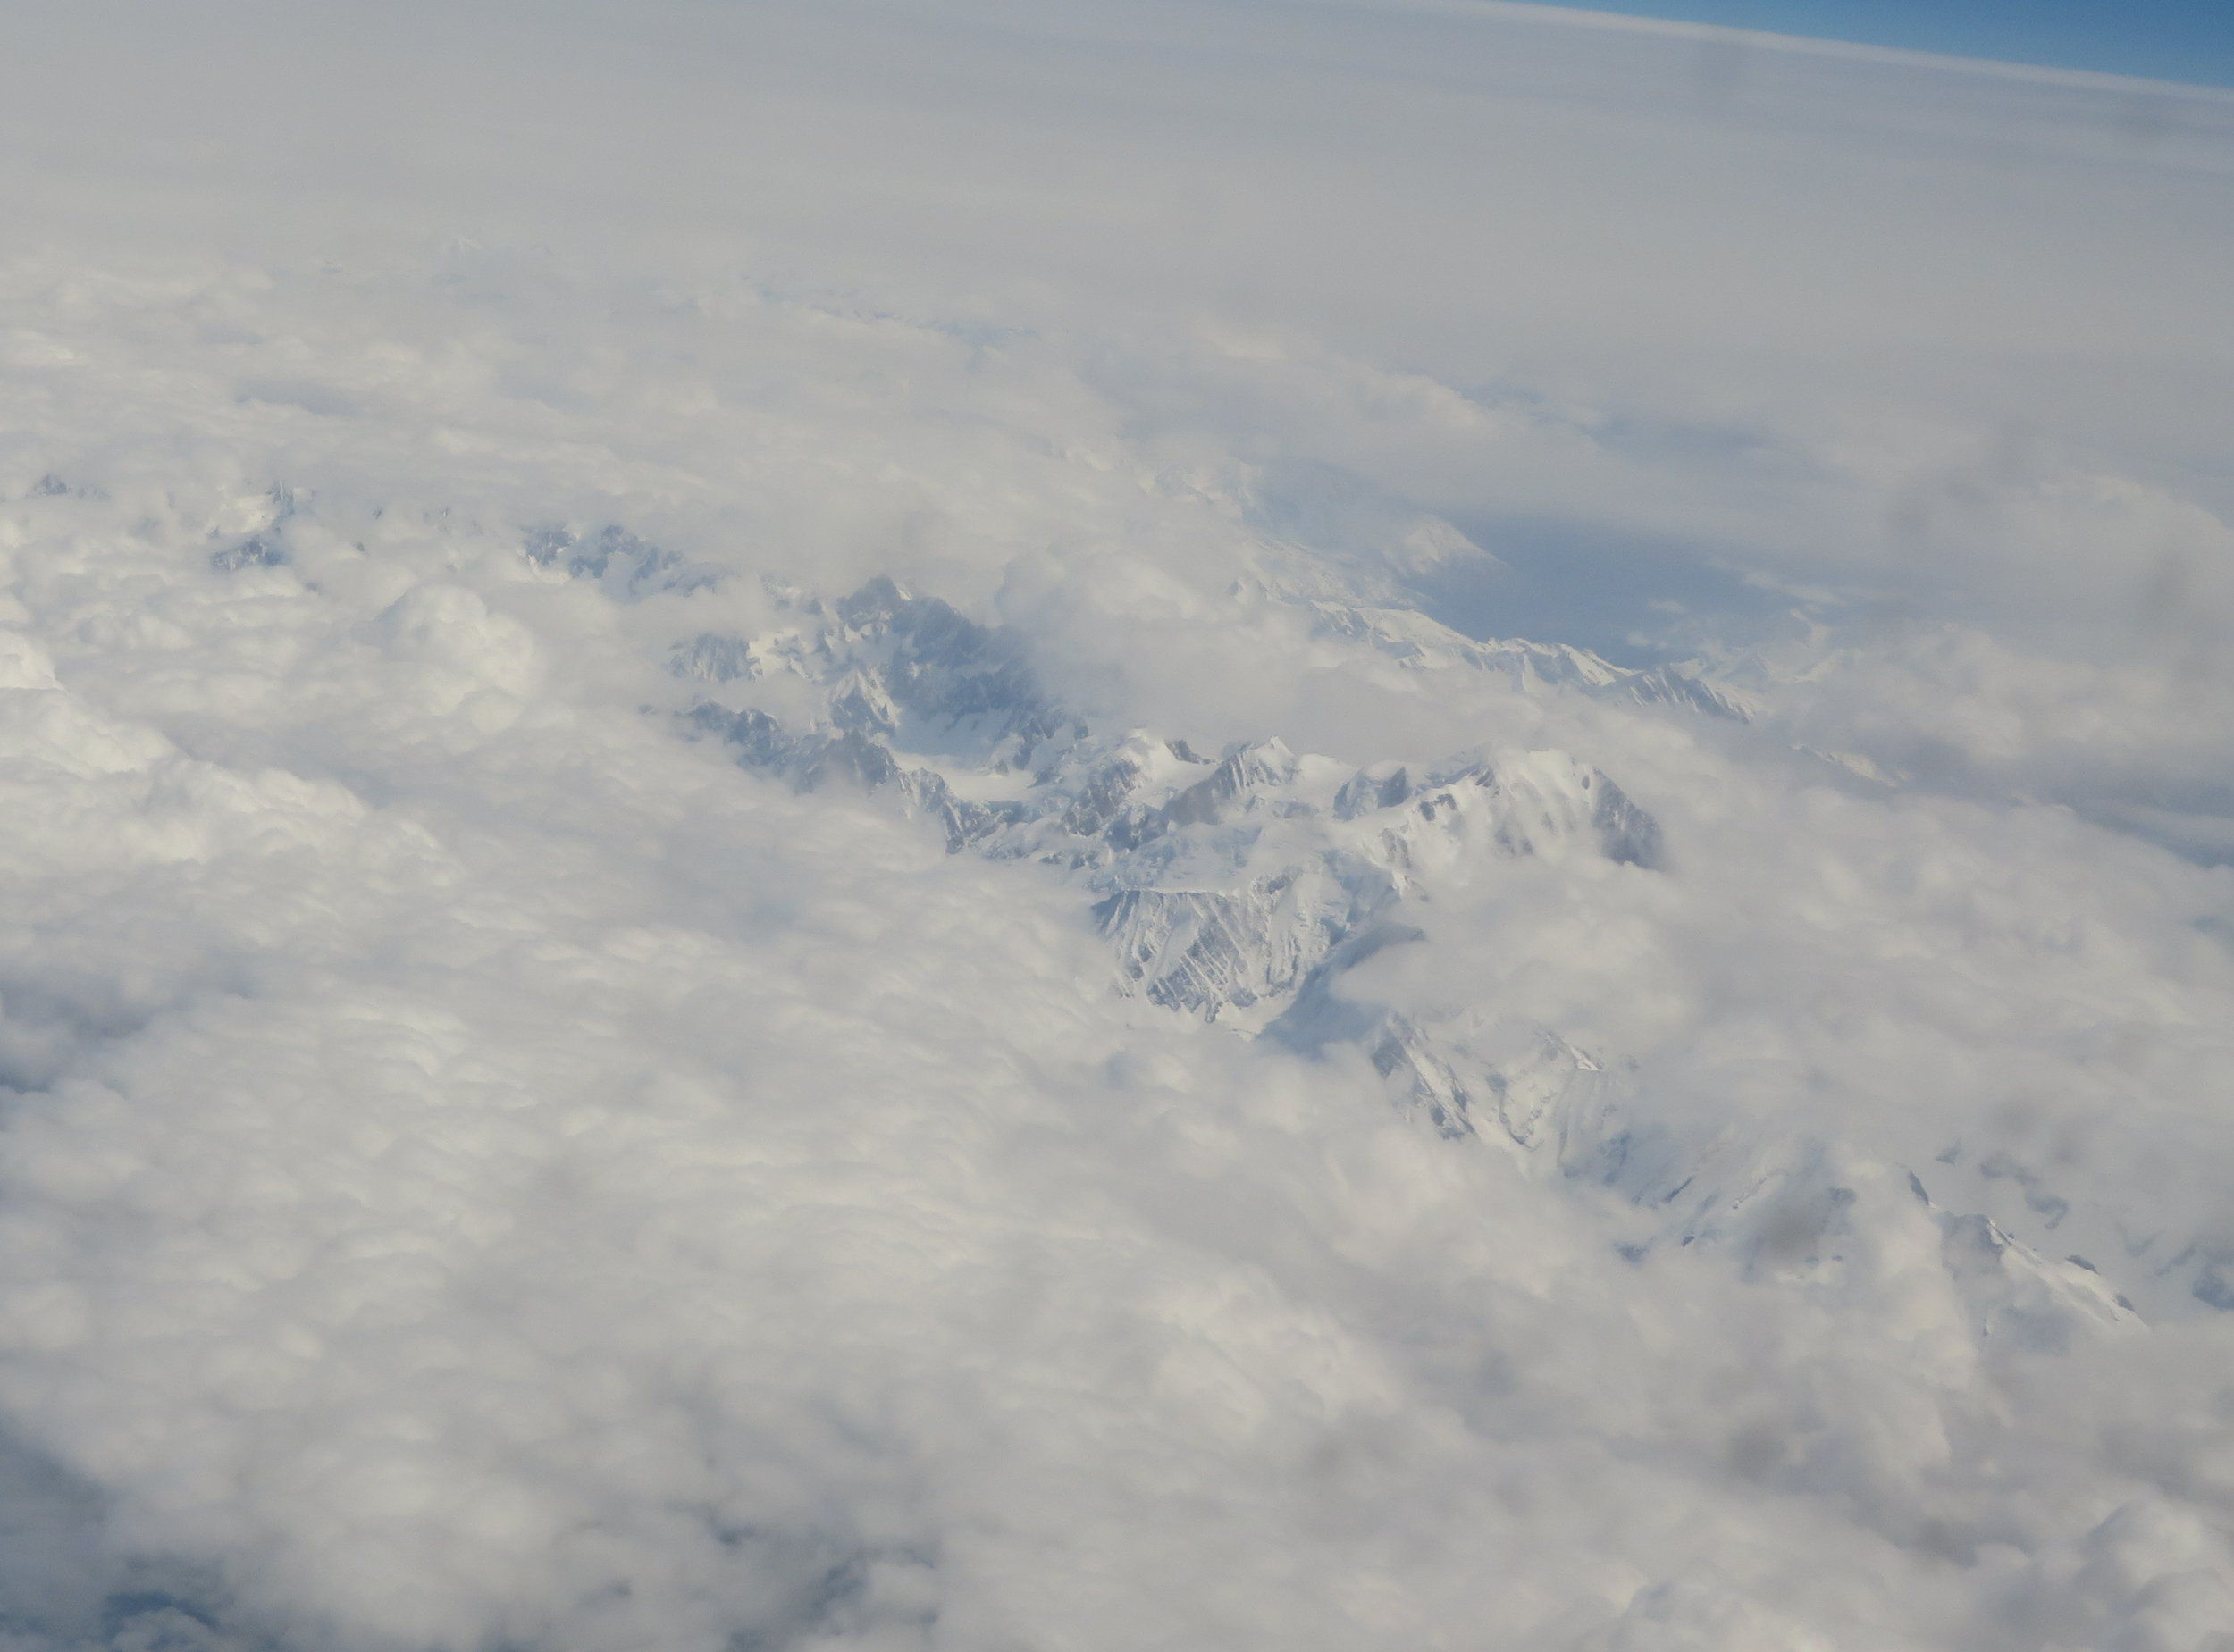 Snow-covered mountains peeked out of the clouds.